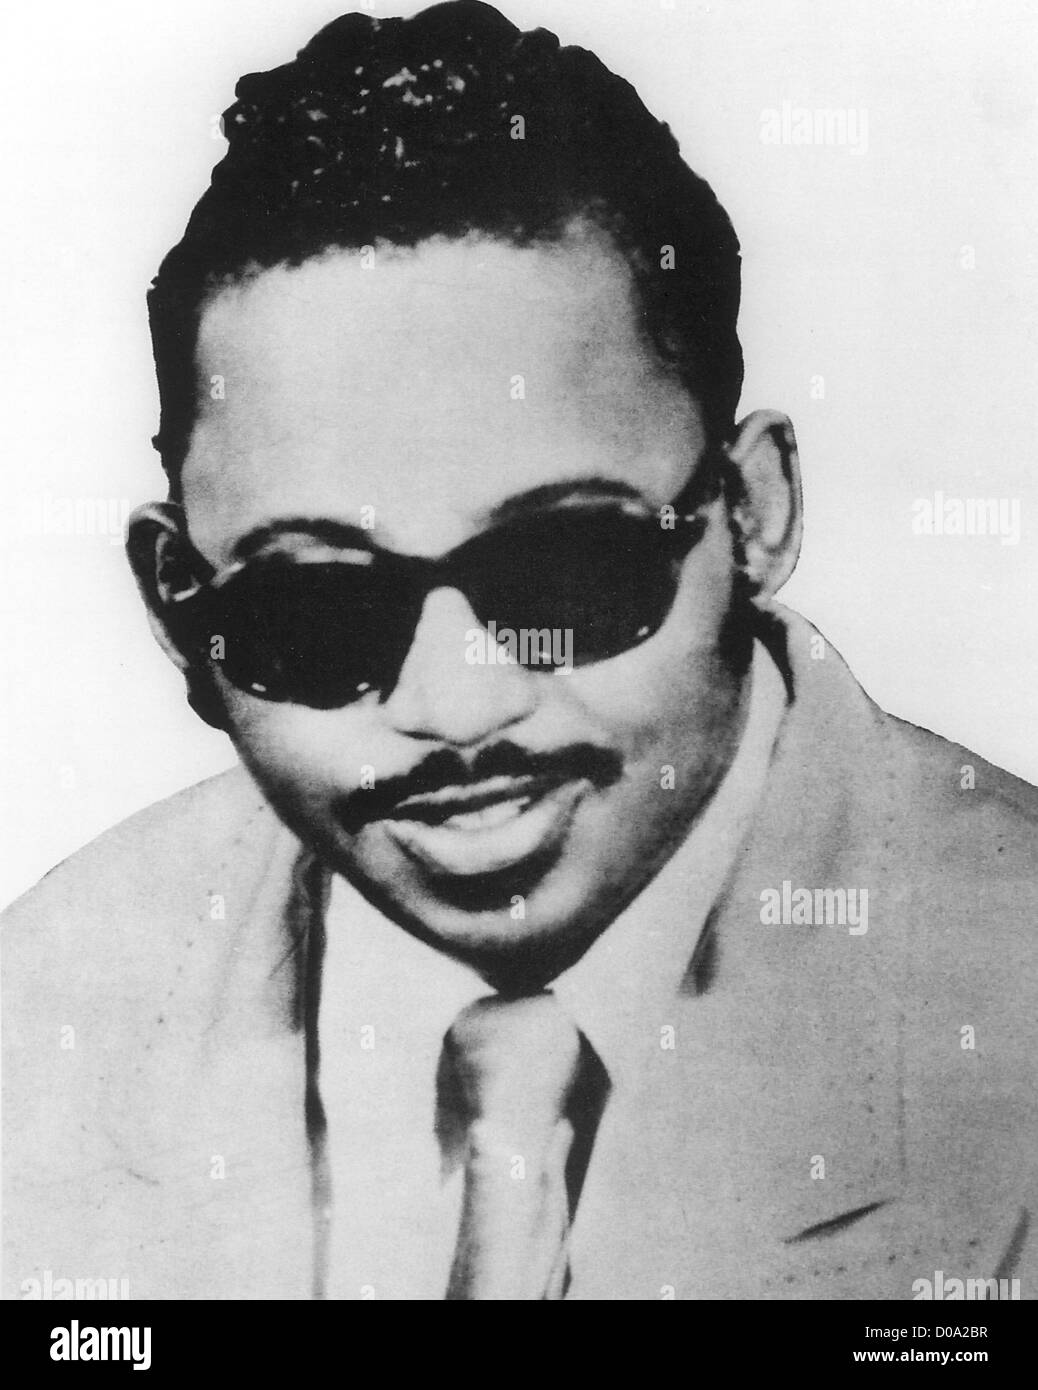 ARCHIE BROWNLEE  (1925-1960) lead singer with the Five Blind Boys of Mississipi (died 1960) - Stock Image